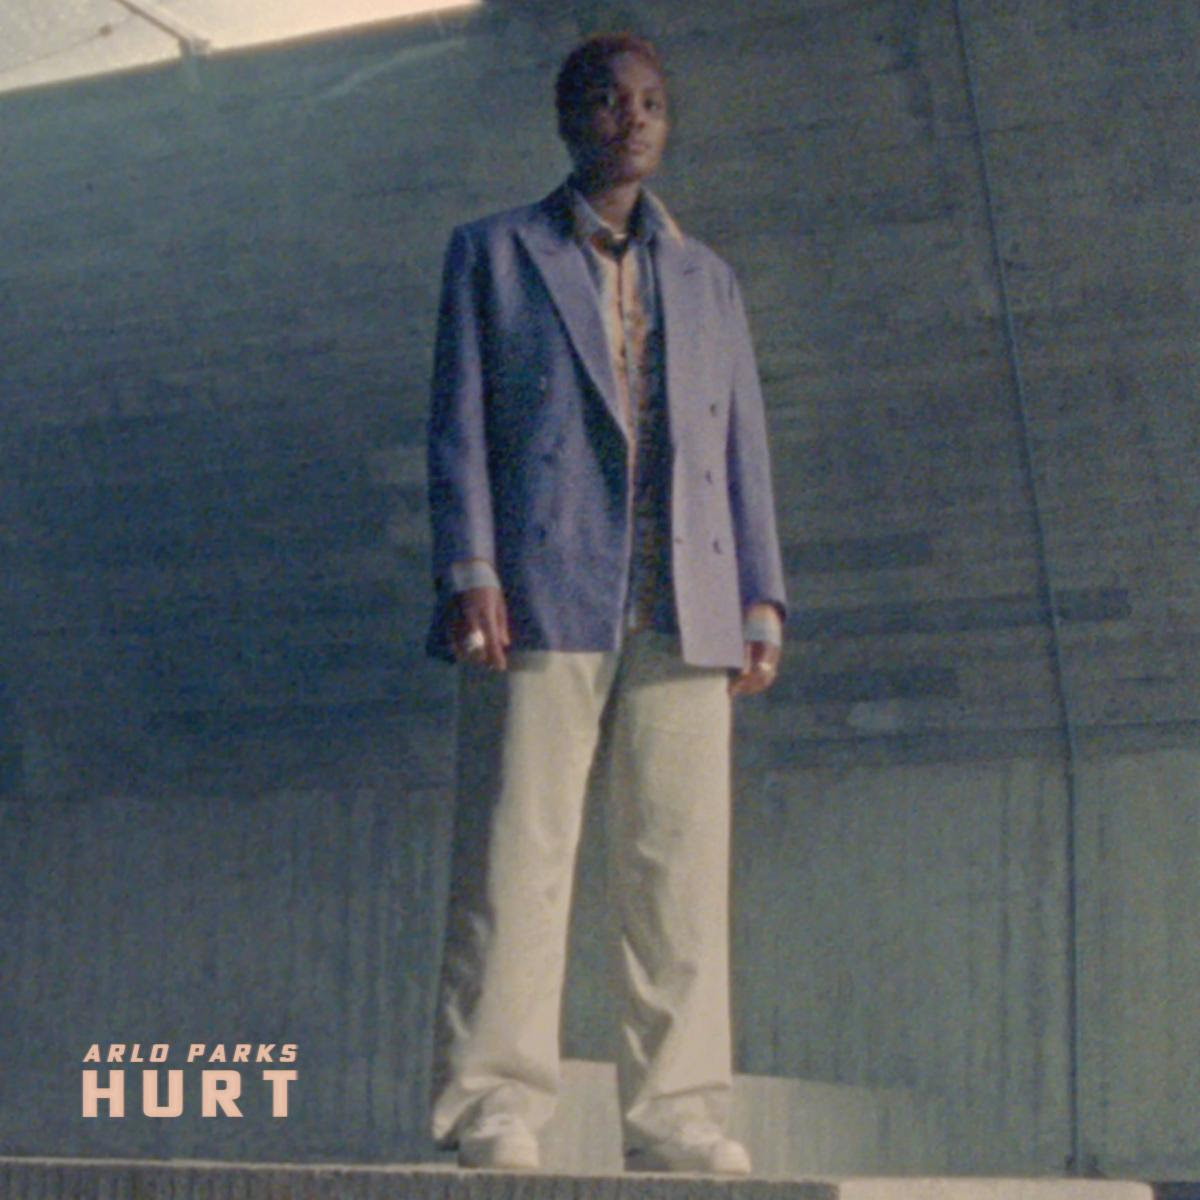 """Arlo Parks is sharing a new song and video """"Hurt."""" The track is now available via Transgressive, accompanied by a video directed by Molly Burdett"""